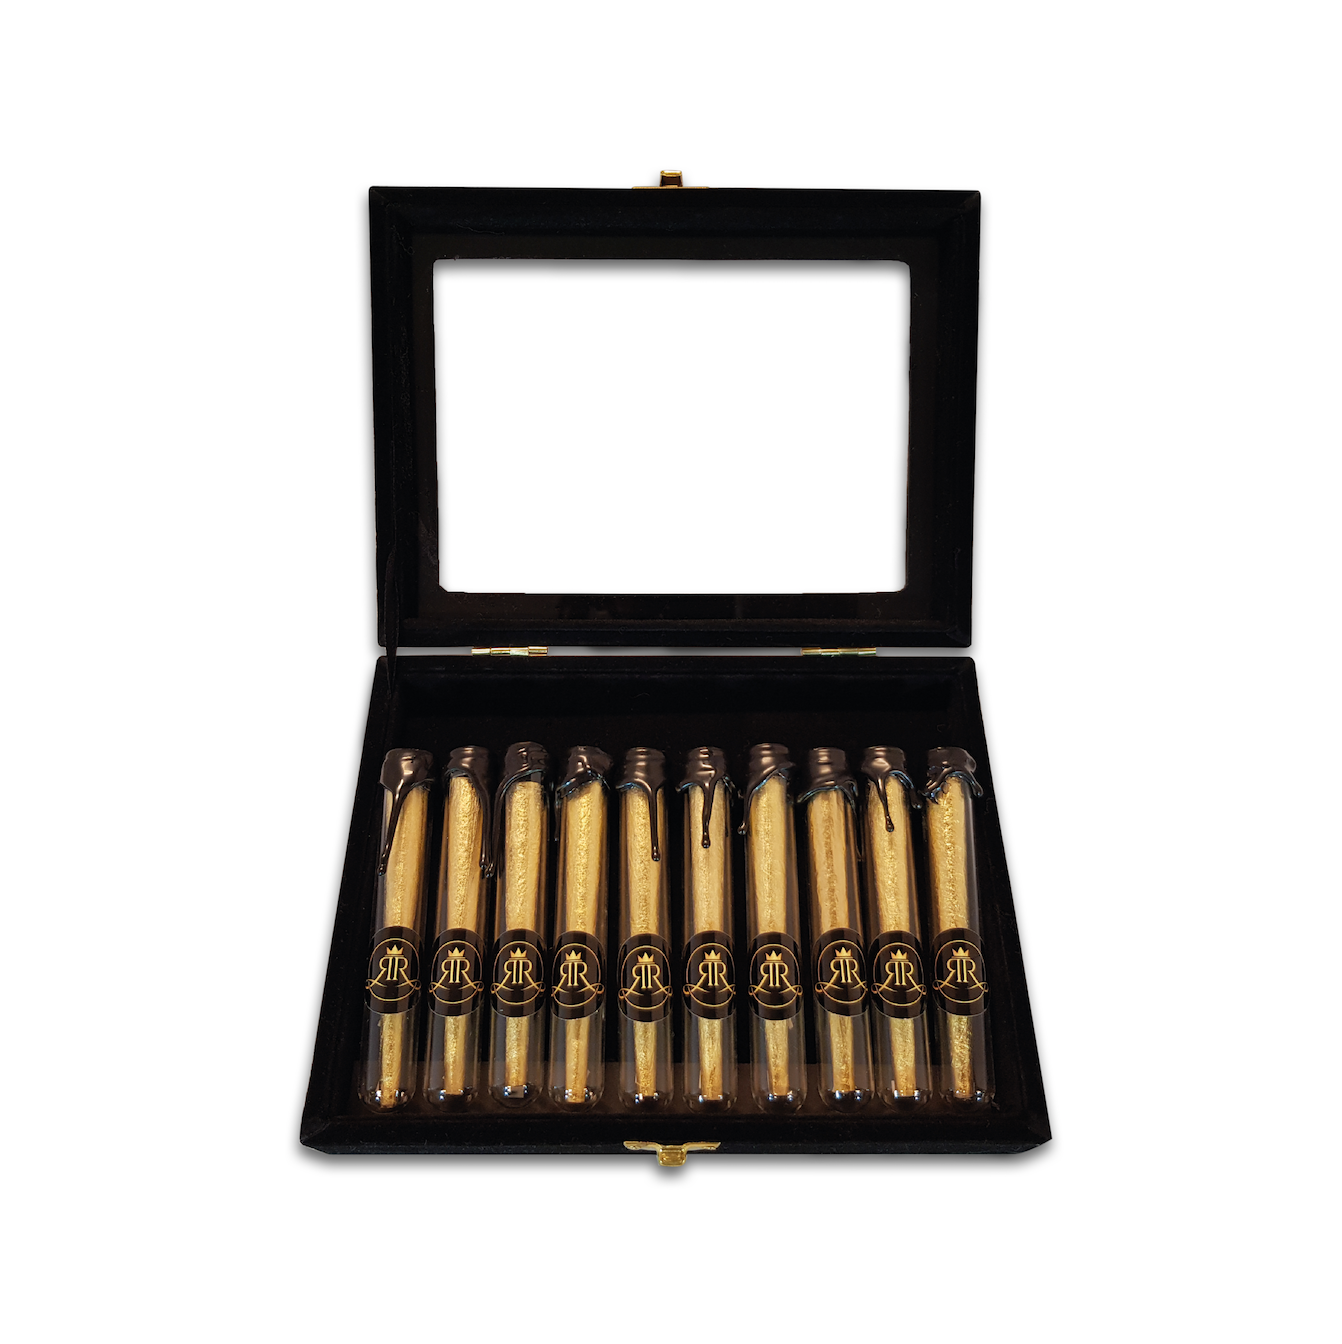 Gouden Vloei - Gouden Cones - 10 stuks - Smoking - Vloei - Rolling paper - Rolling papers - Royal Rolling - Smoking - Smoke - Joint - Joints - Headshop - Amsterdam - Alkmaar - coffeeshop - 24K Gold - King - Queen